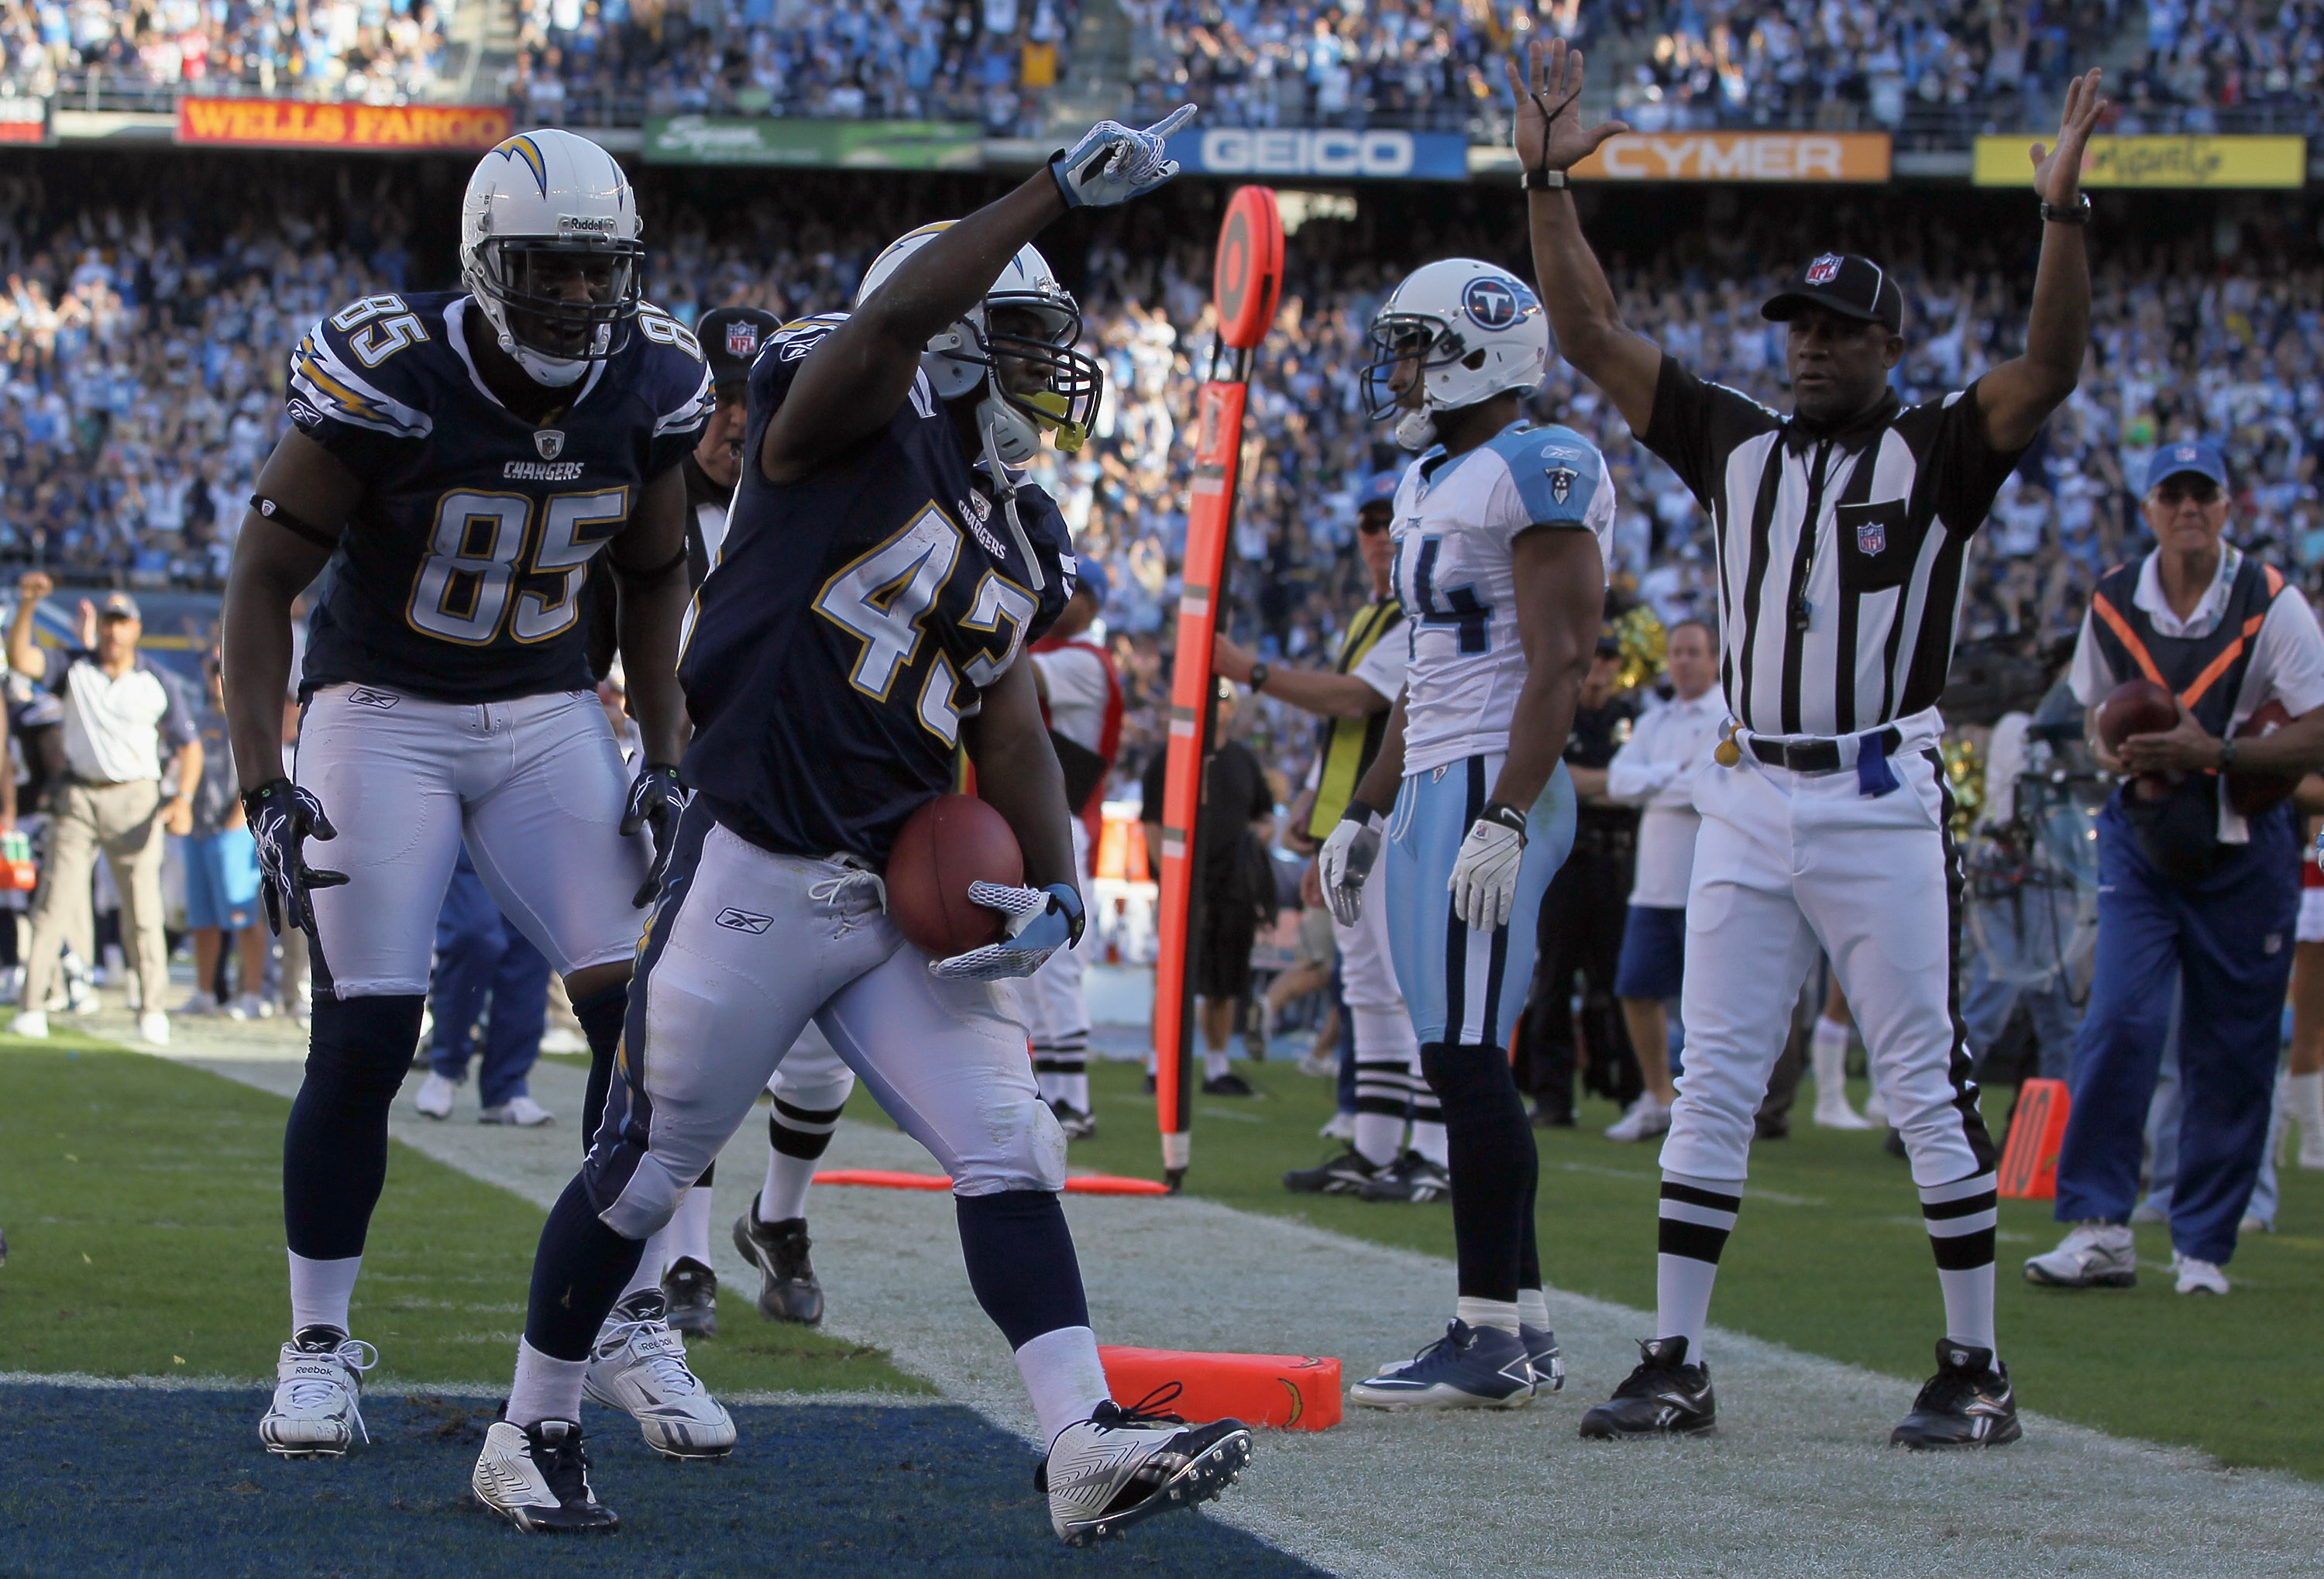 SAN DIEGO - OCTOBER 31:  Tight end Antonio Gates (L) #85 and Running back Darren Sproles #43 of the San Diego Chargers celebrate Sproles' touchdown against the Tennessee Titans in the fourth quarter at Qualcomm Stadium on October 31, 2010 in San Diego, Ca